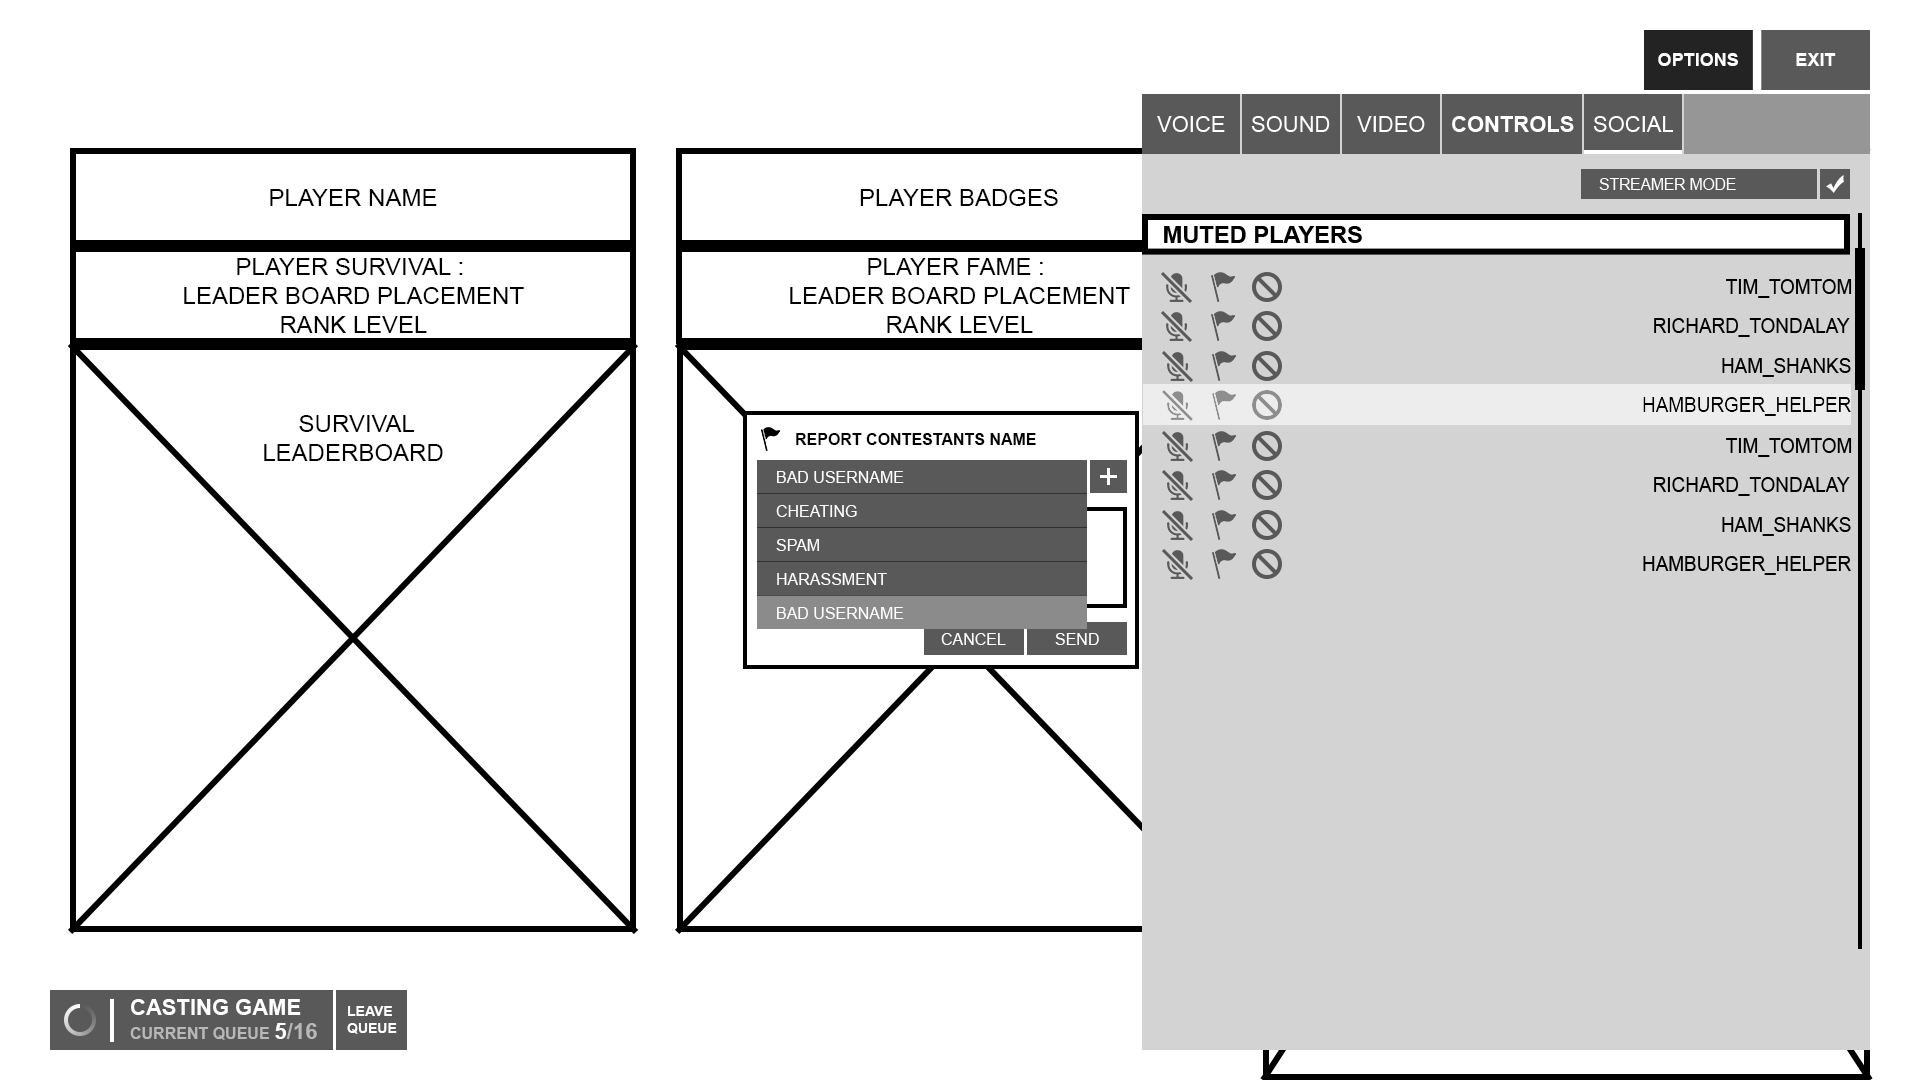 SOS_GameFlow_Wireframes_v4_00_13